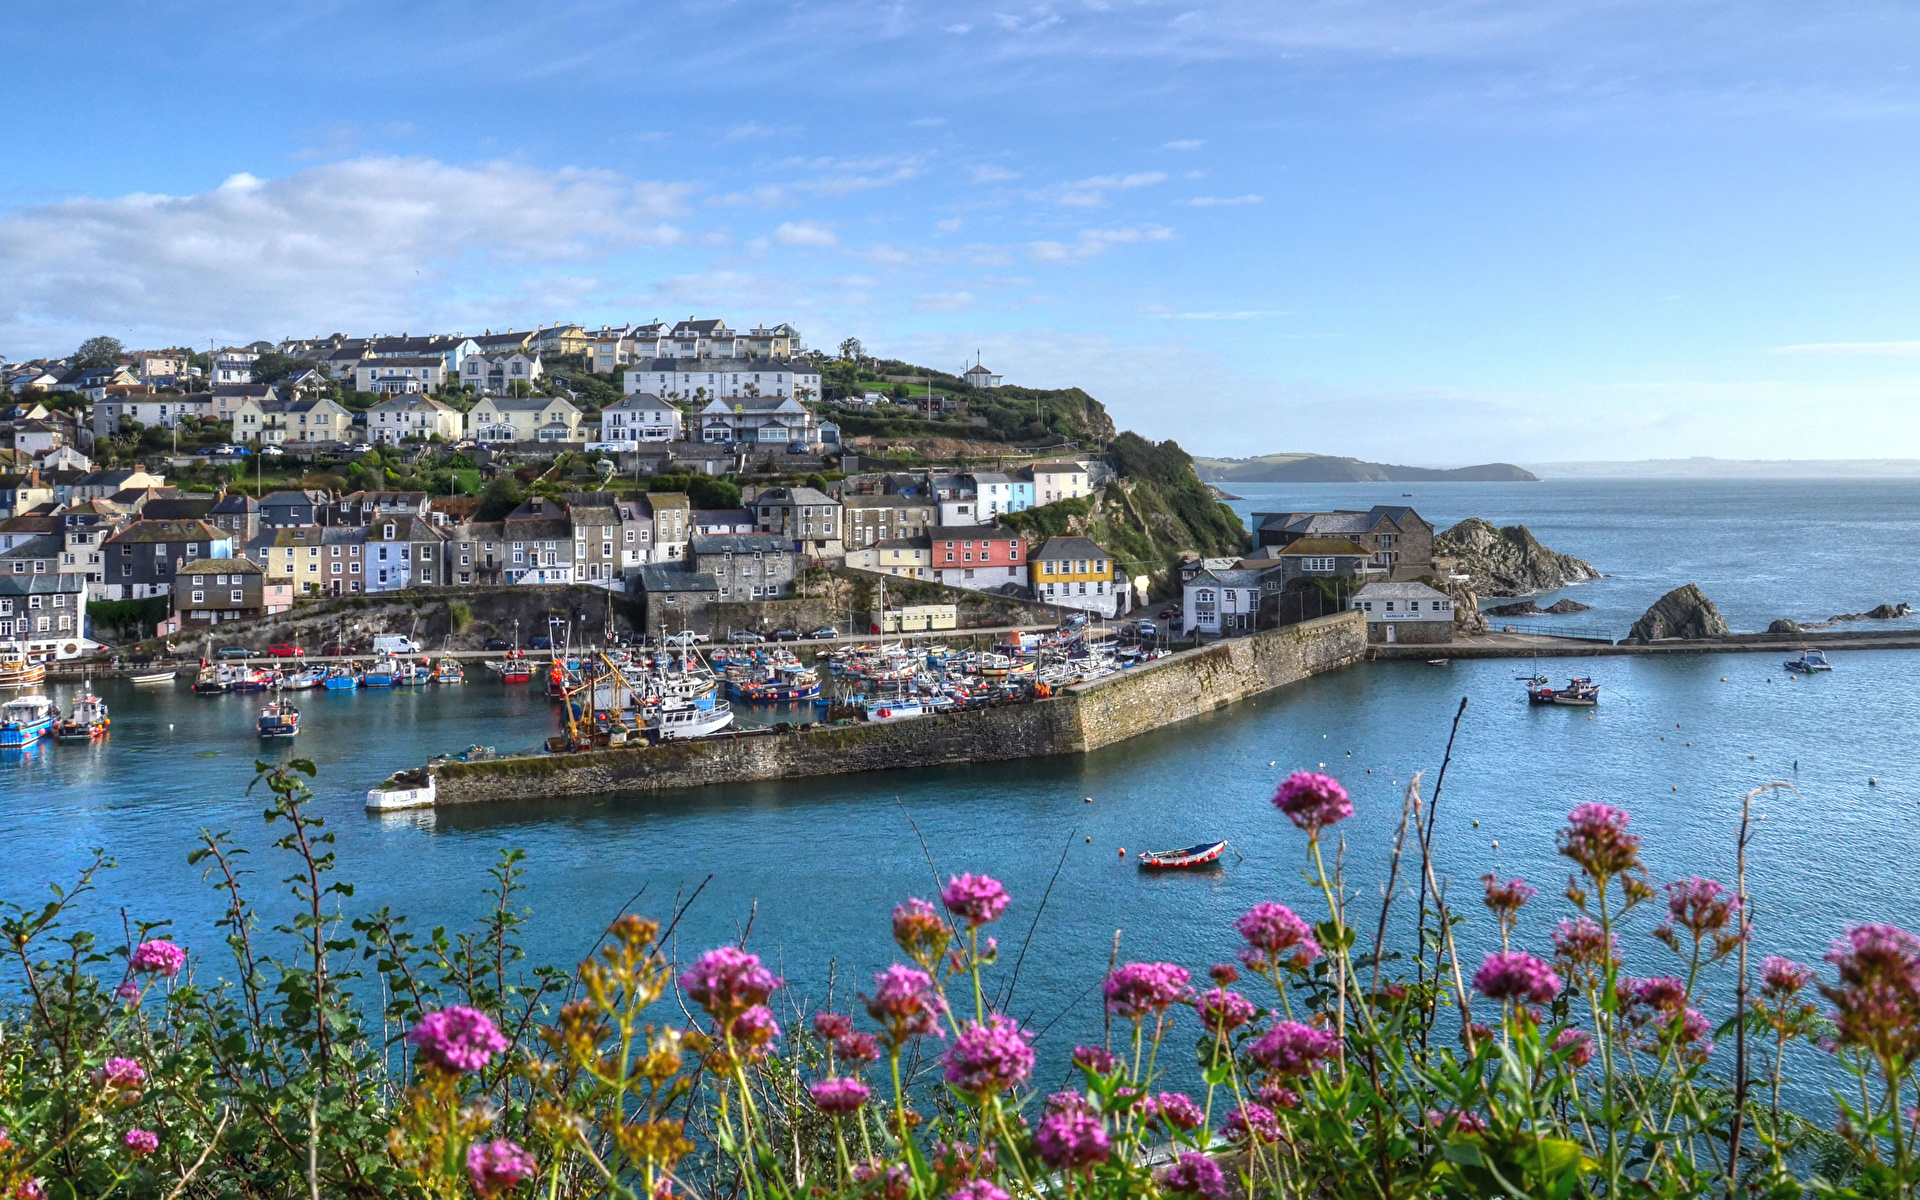 Images England Mevagissey Riverboat Bay Pier Cities Building 1920x1200 Berth Marinas Houses